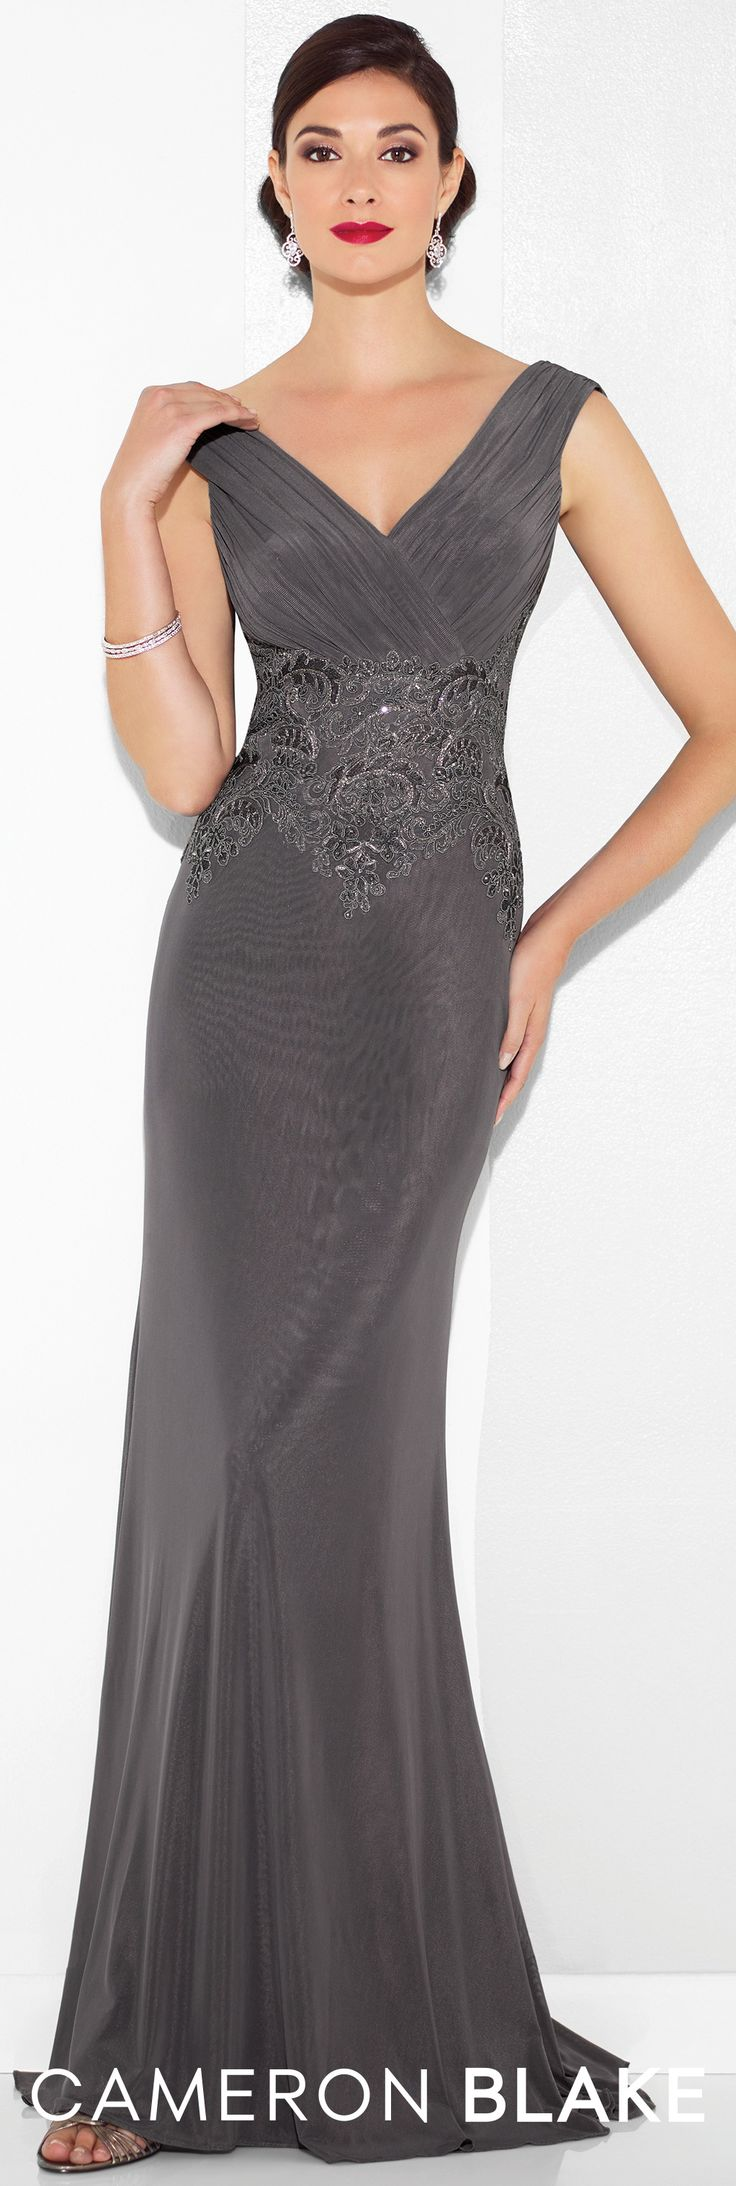 Formal Evening Gowns by Mon Cheri - Spring 2017 - Style No. 117611 - charcoal gray evening dress with ruched cap sleeves and bodice and draped cowl back